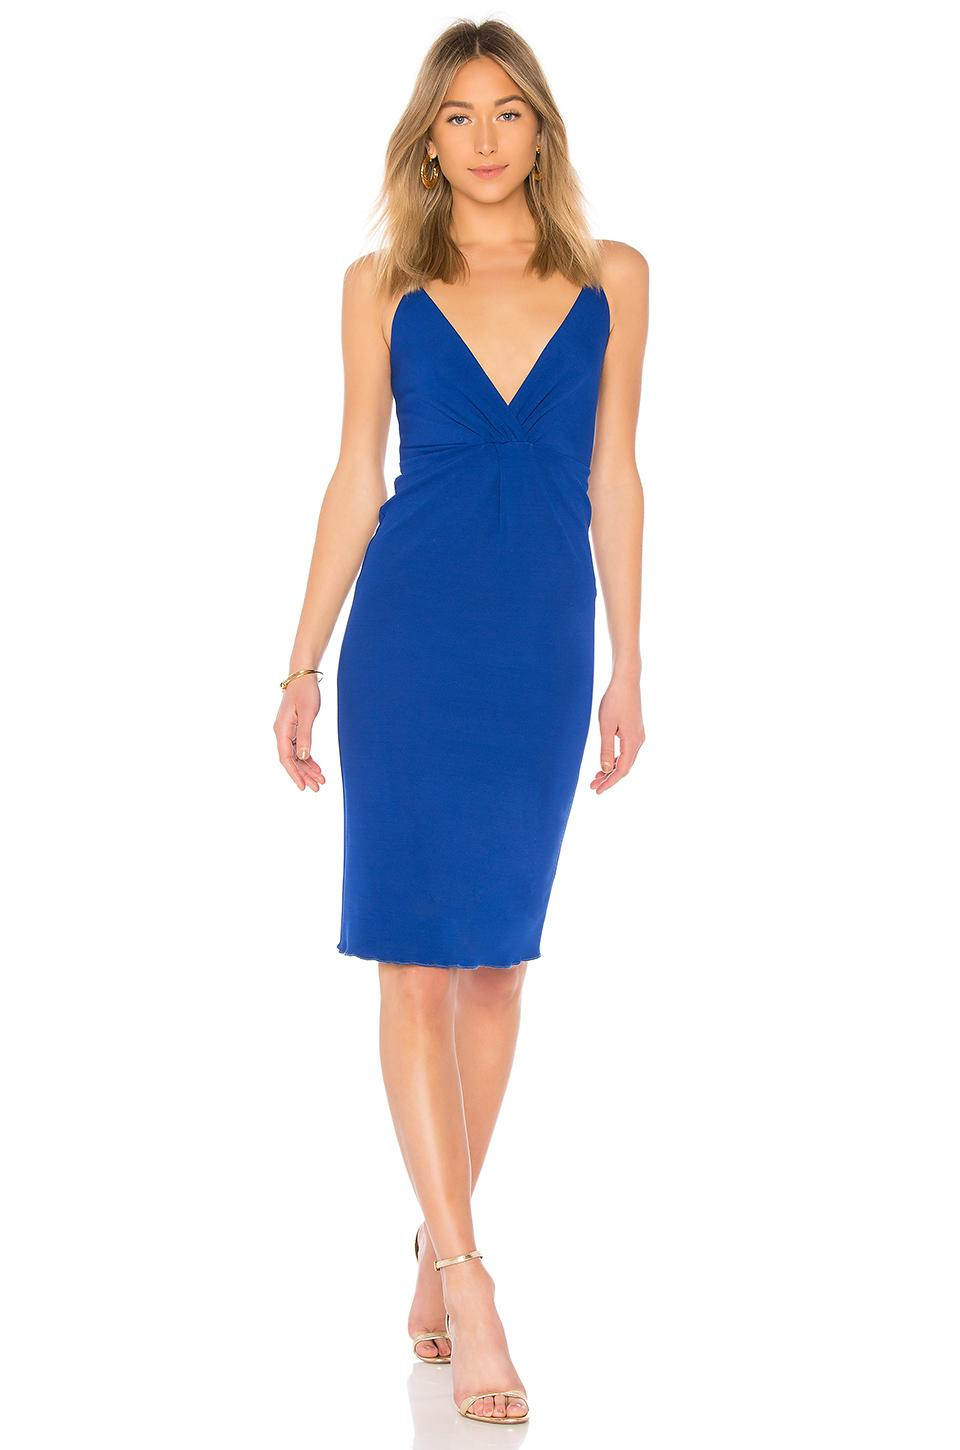 House Of Harlow 1960 X Revolve Piers Dress In Cobalt